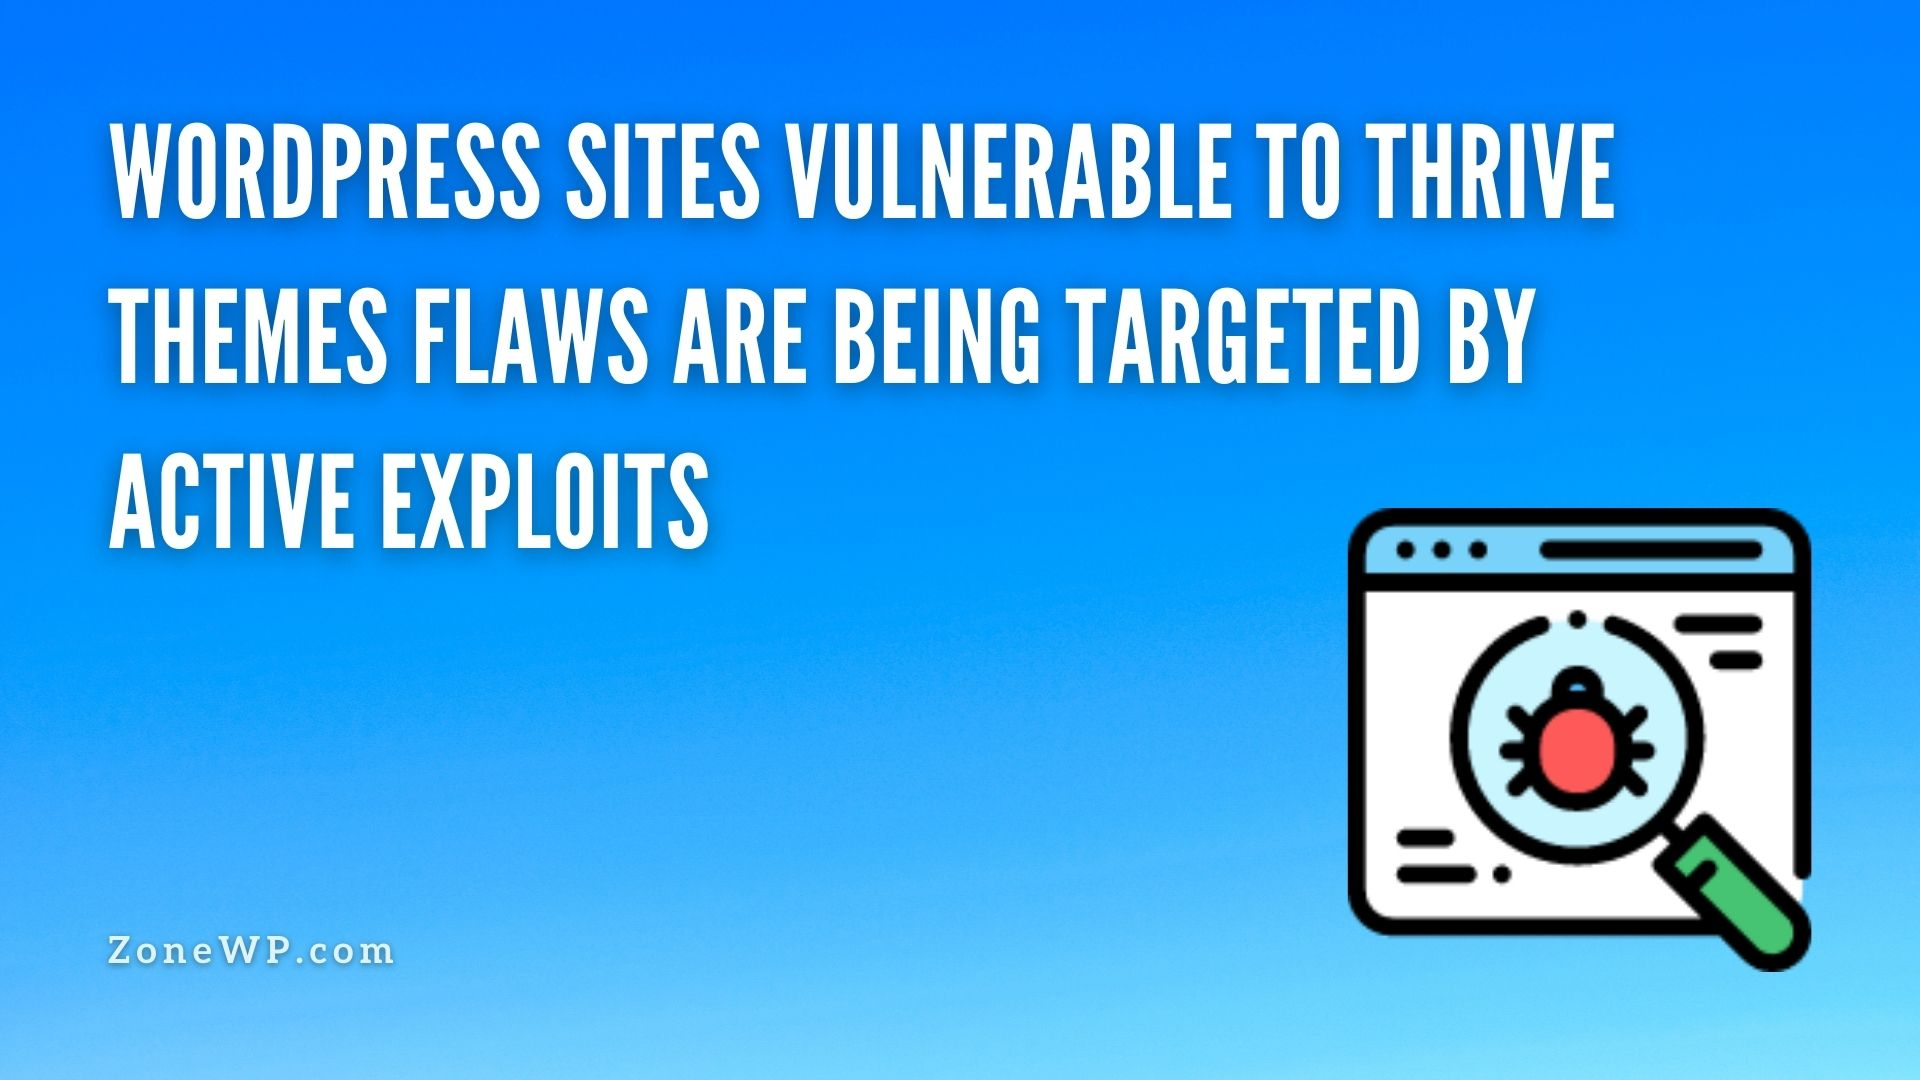 WordPress Sites Vulnerable to Thrive Themes Flaws are being targeted by active exploits